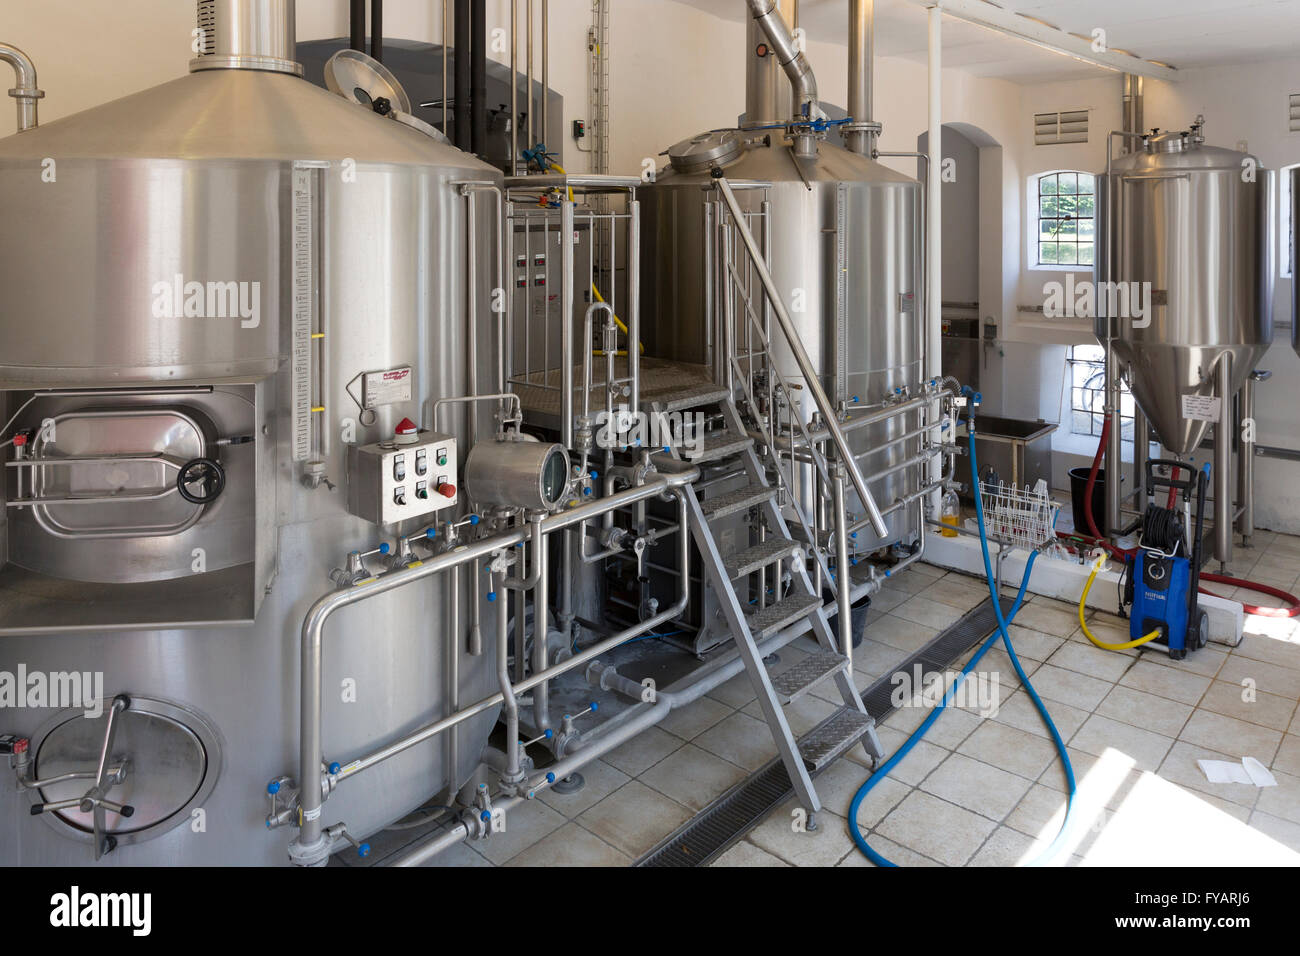 The interior of the Rise Brewery (Rise Bryggeri) on the island of Aero, Denmark - Stock Image